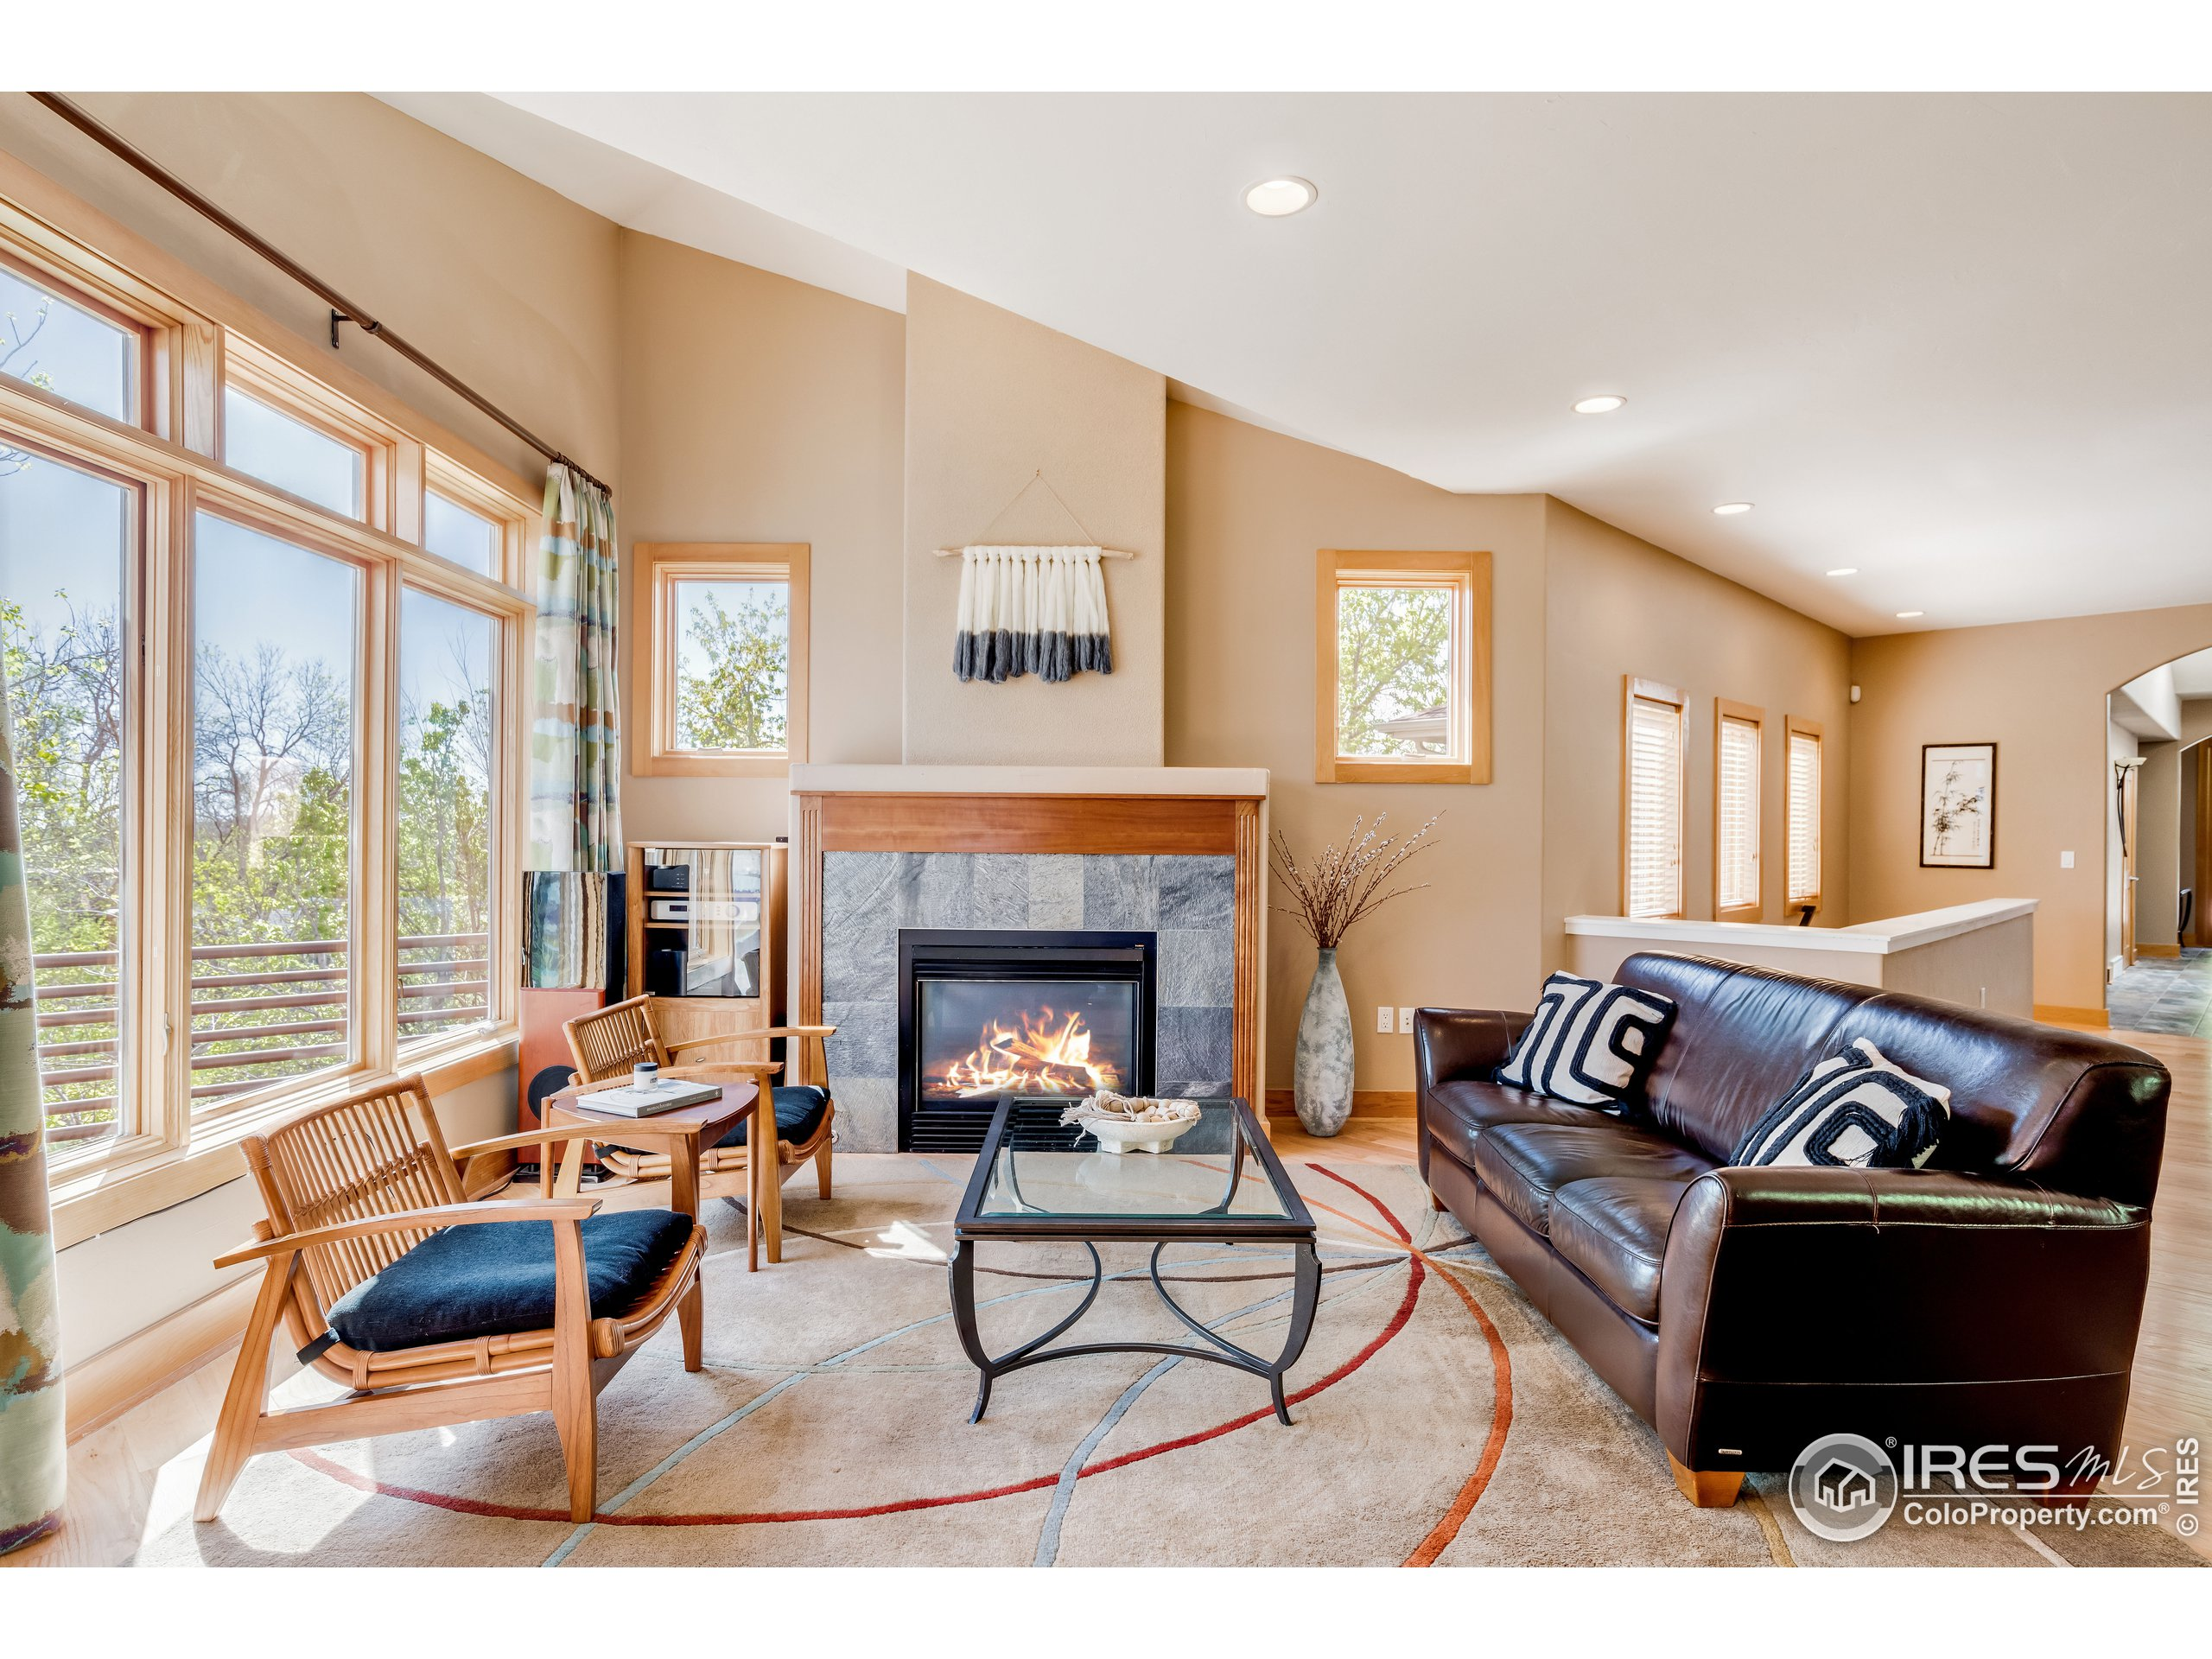 Living Room Fireplace & Vaulted Ceiling